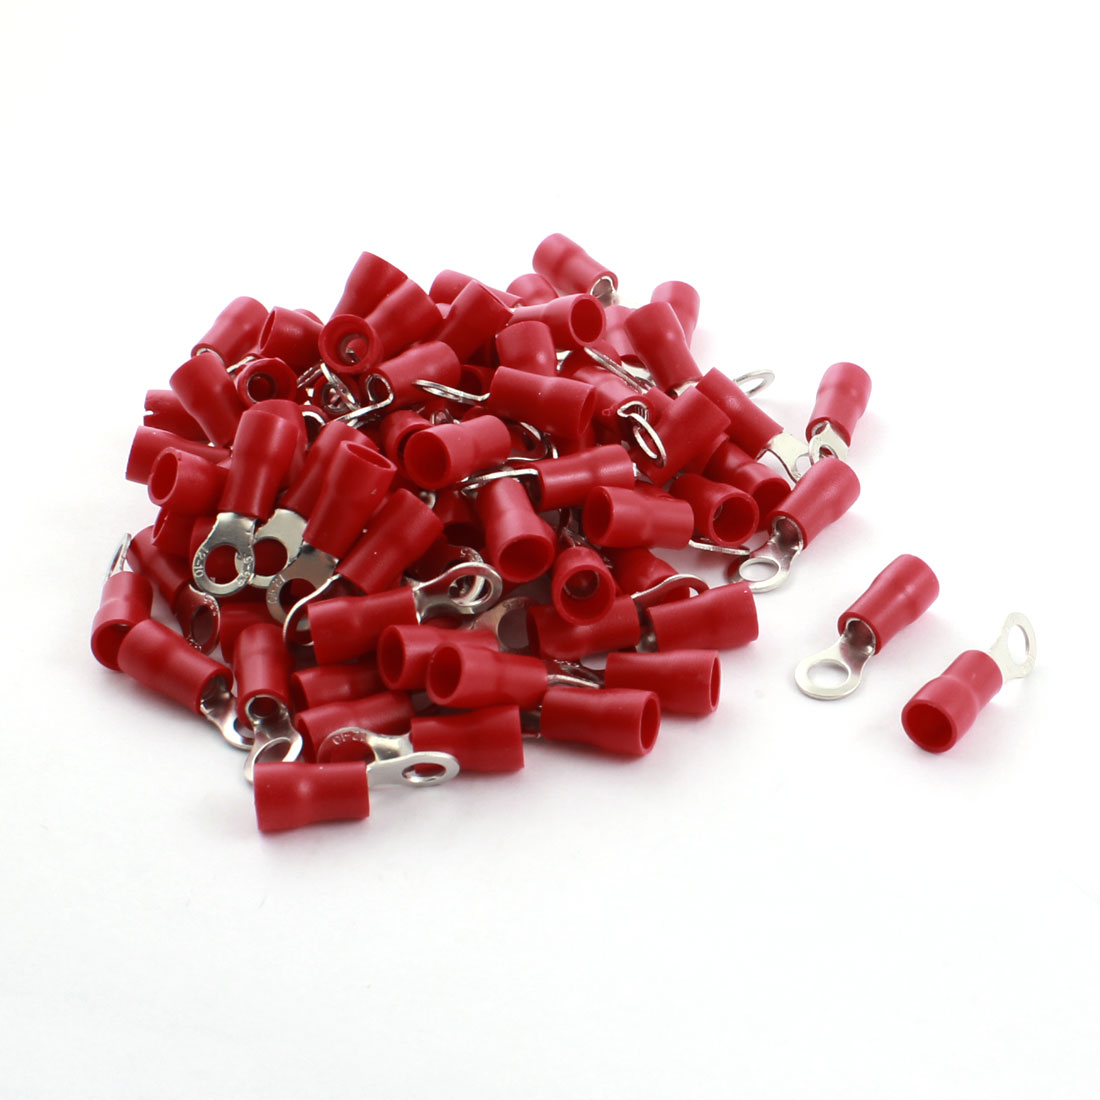 100 Pcs RV5.5-5 48A 12-10AWG Red Pre Insulated Ring Terminal Cable Connector 6.4mm Hole